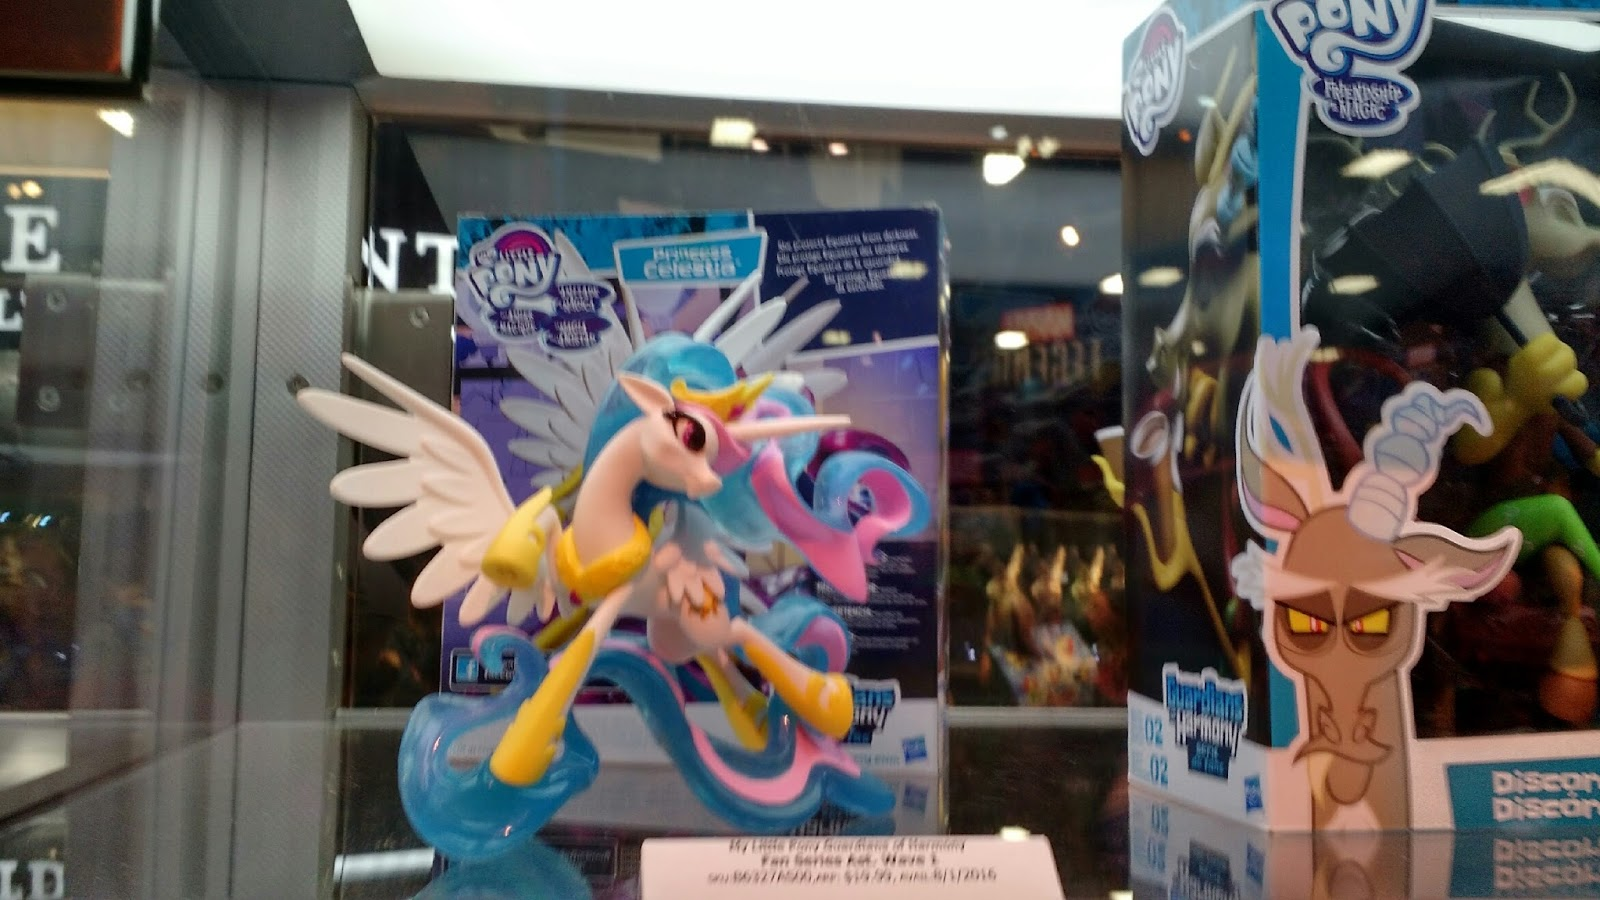 Movie Reviews And More San Diego Comic: MLP Stuff!: SDCC 2016 Hasbro Booth Tour